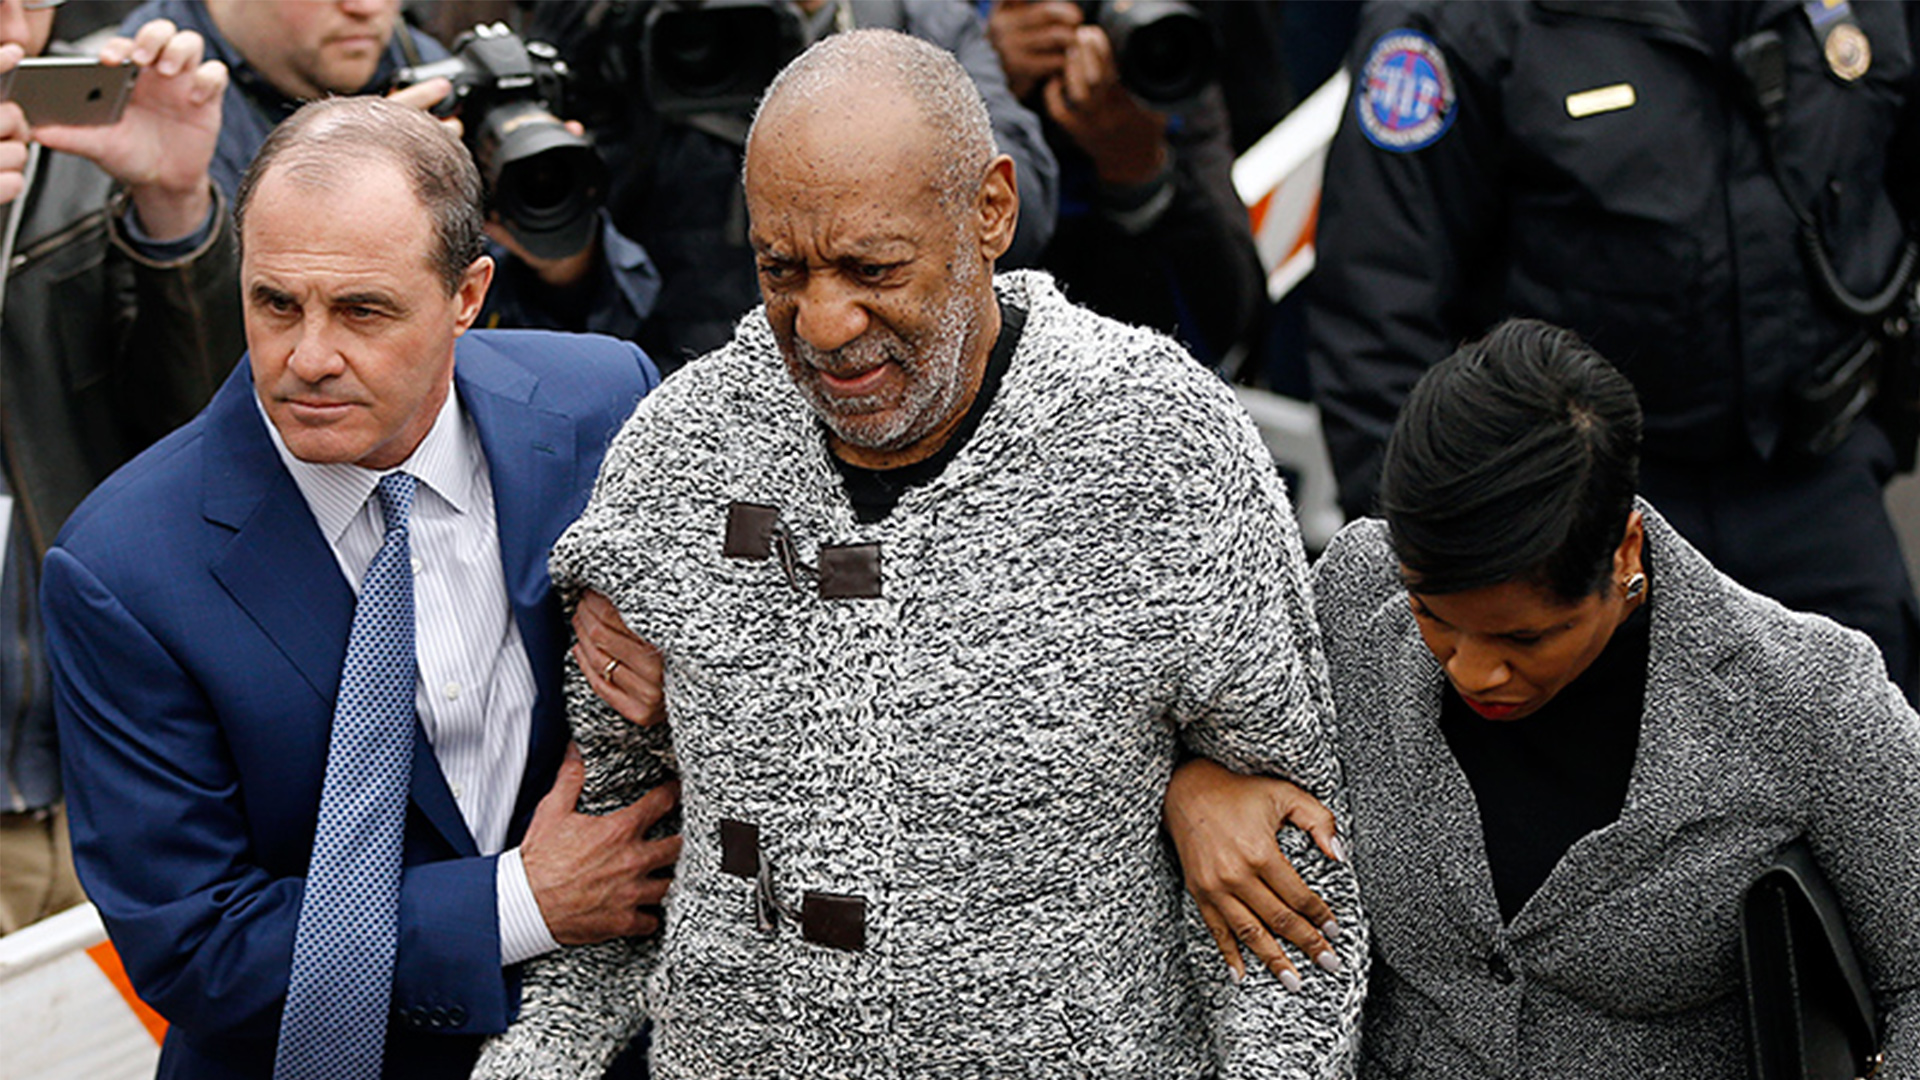 Image result for Bill Cosby going to Prison